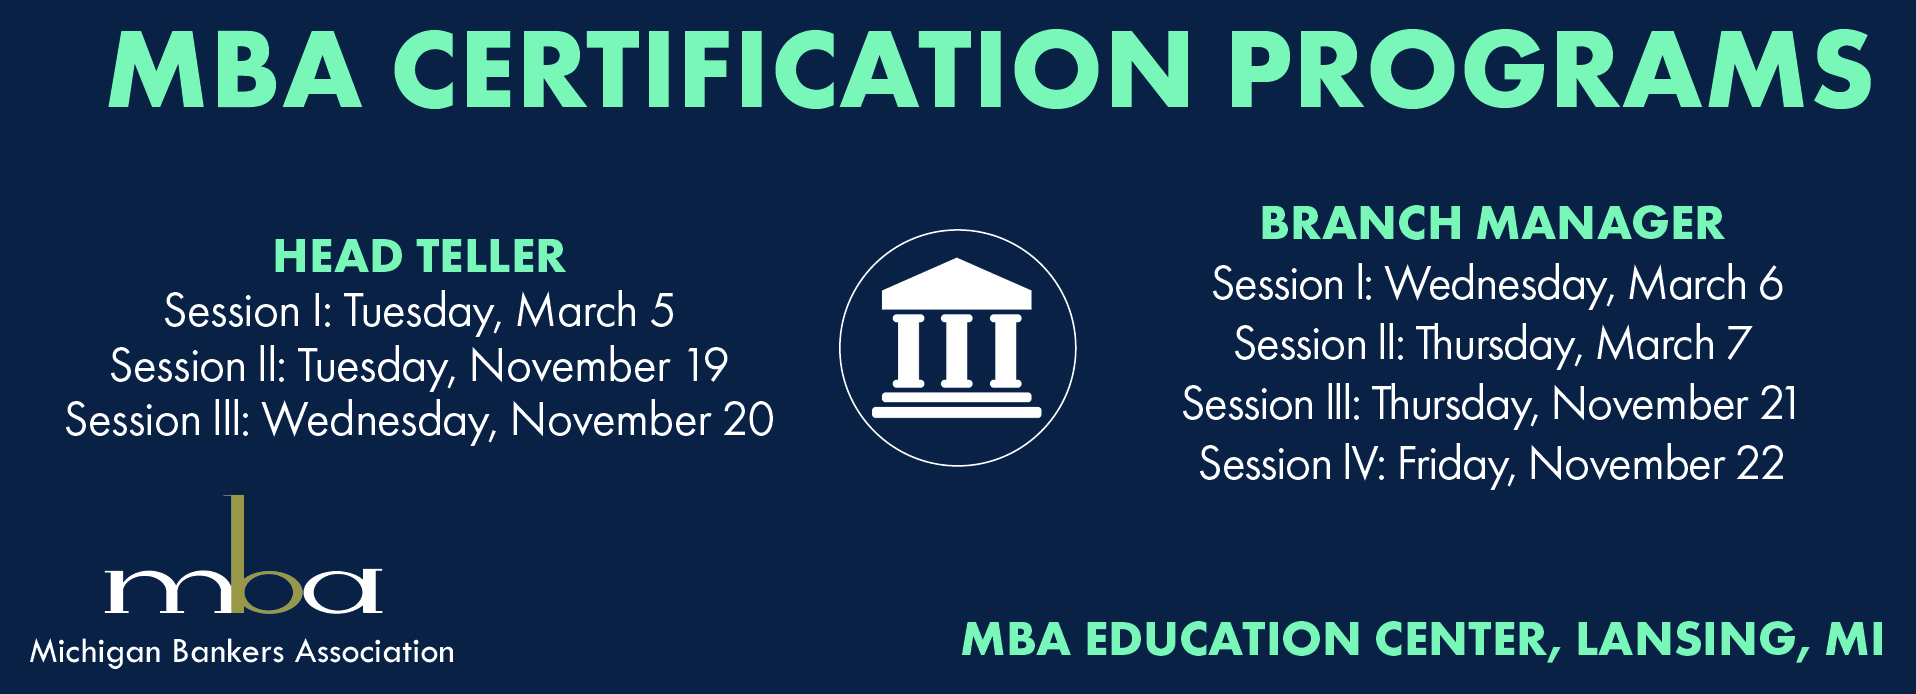 Are you looking to promote your specialized knowledge and expertise? MBA  certification programs can help you gain the respect of your peers and  supervisors.